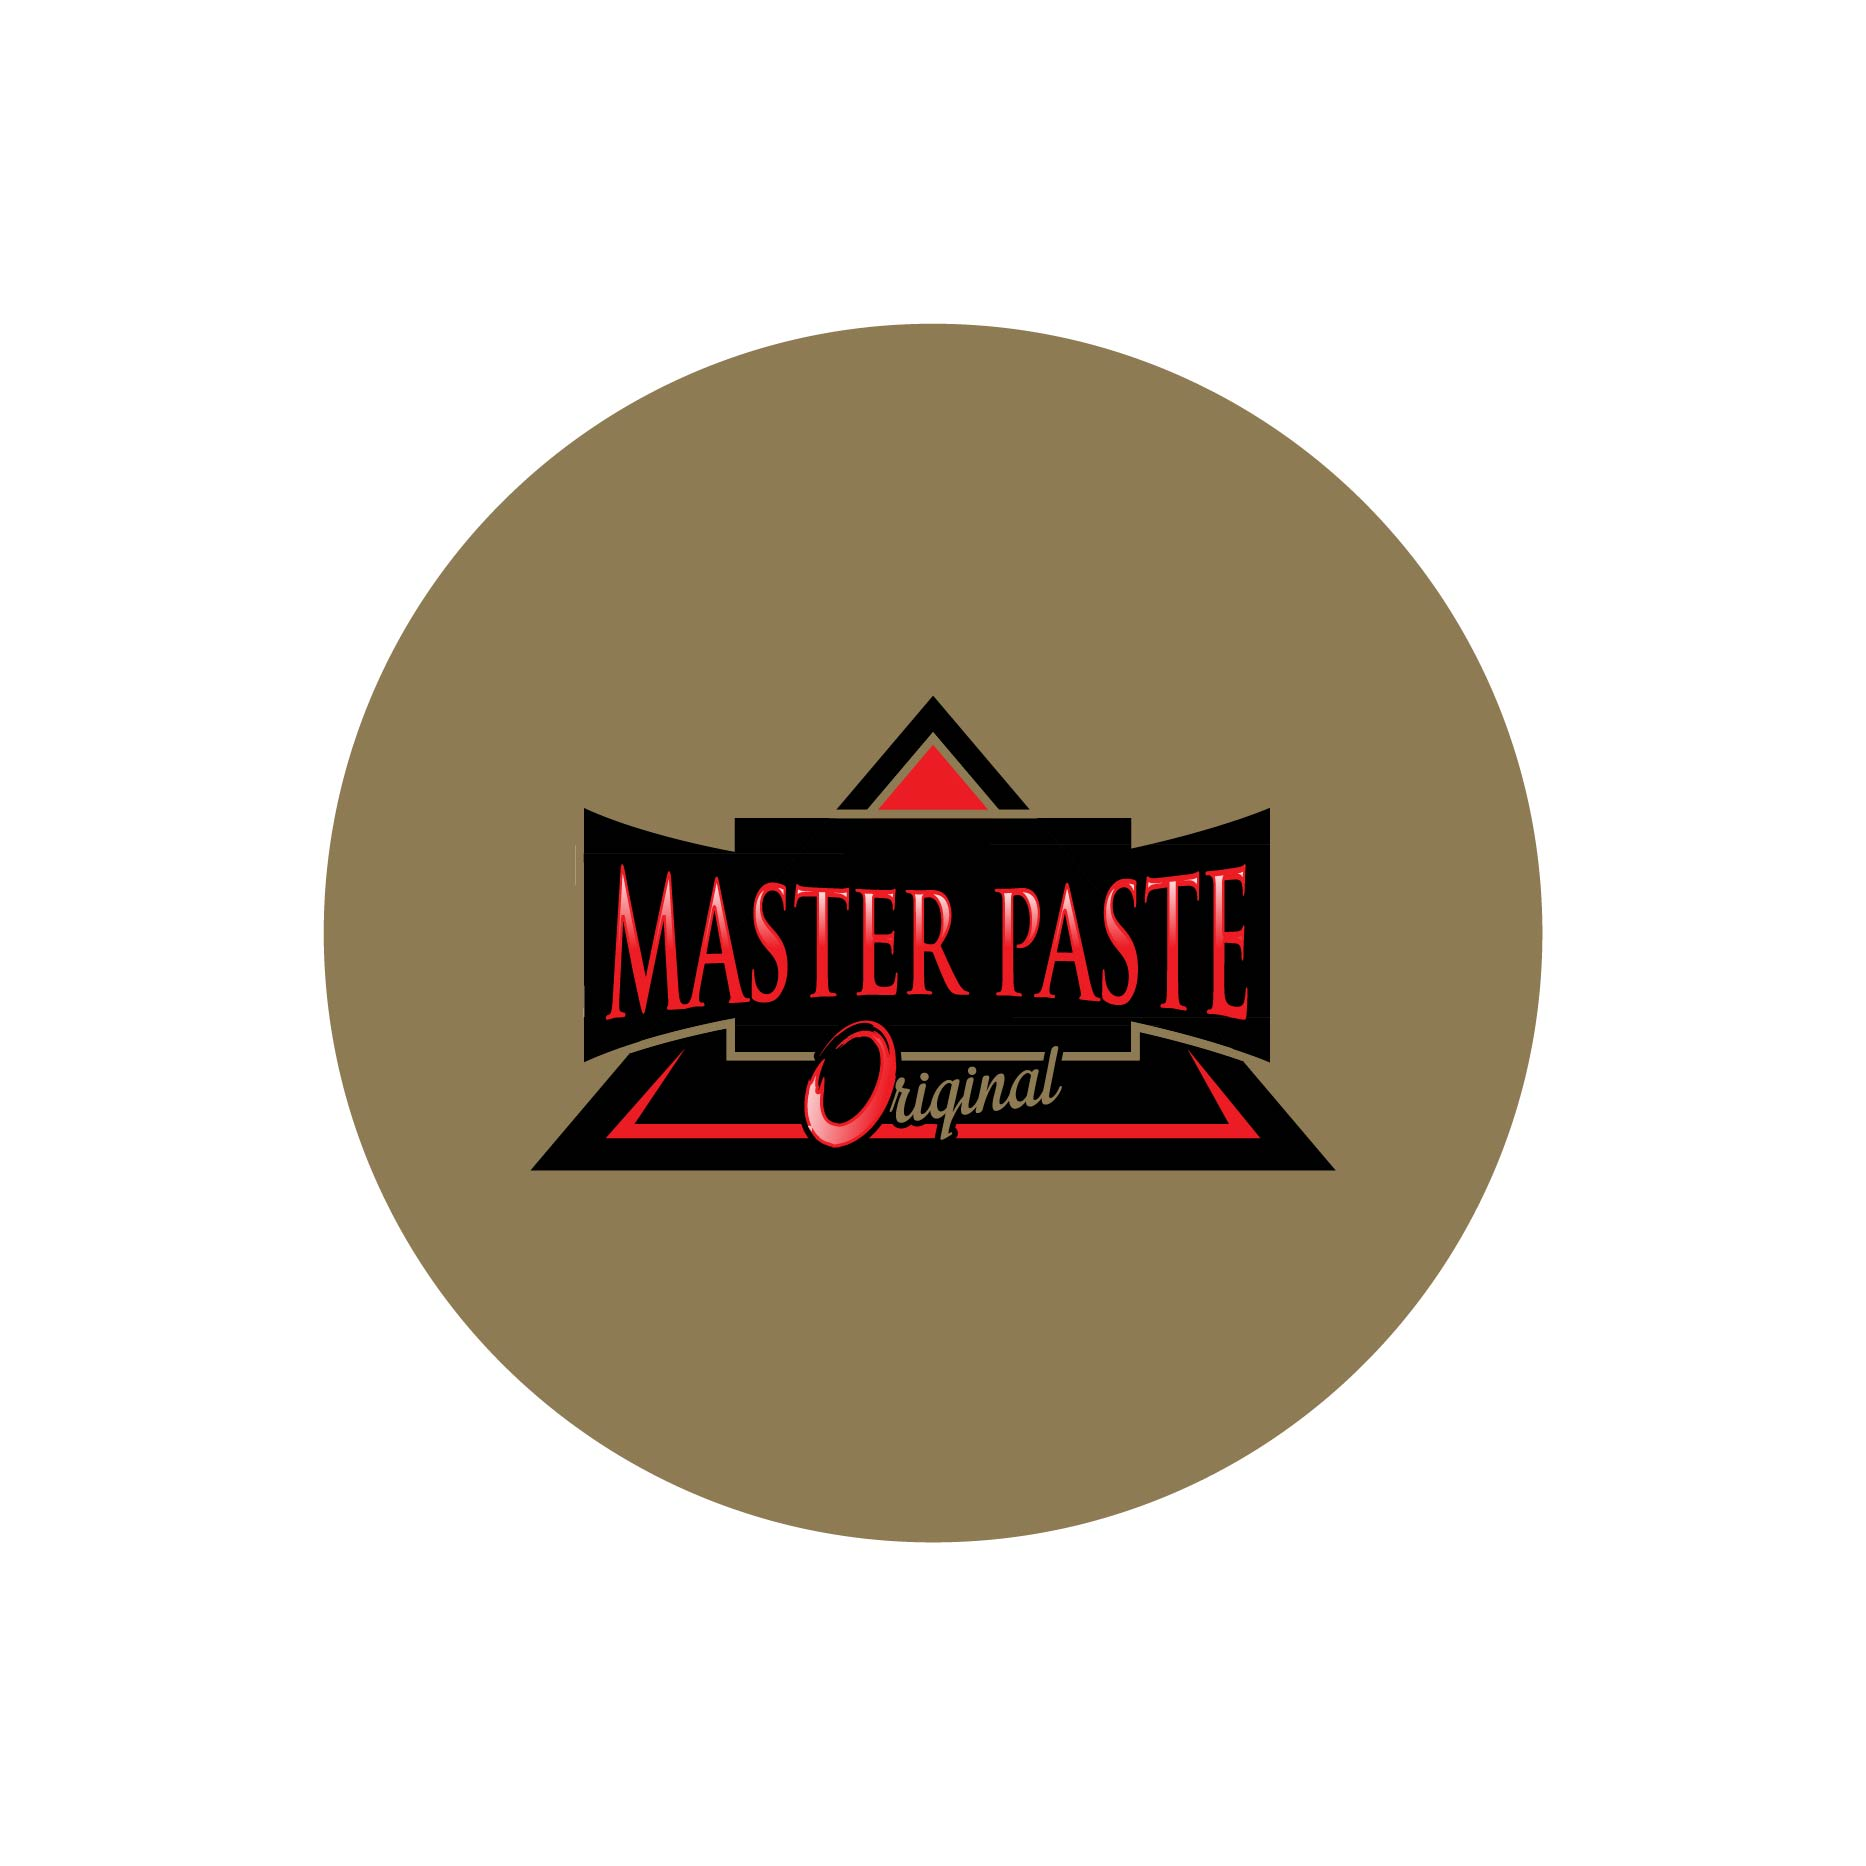 Logo Design by lagalag - Entry No. 61 in the Logo Design Contest Unique Logo Design Wanted for Master Paste Original™.